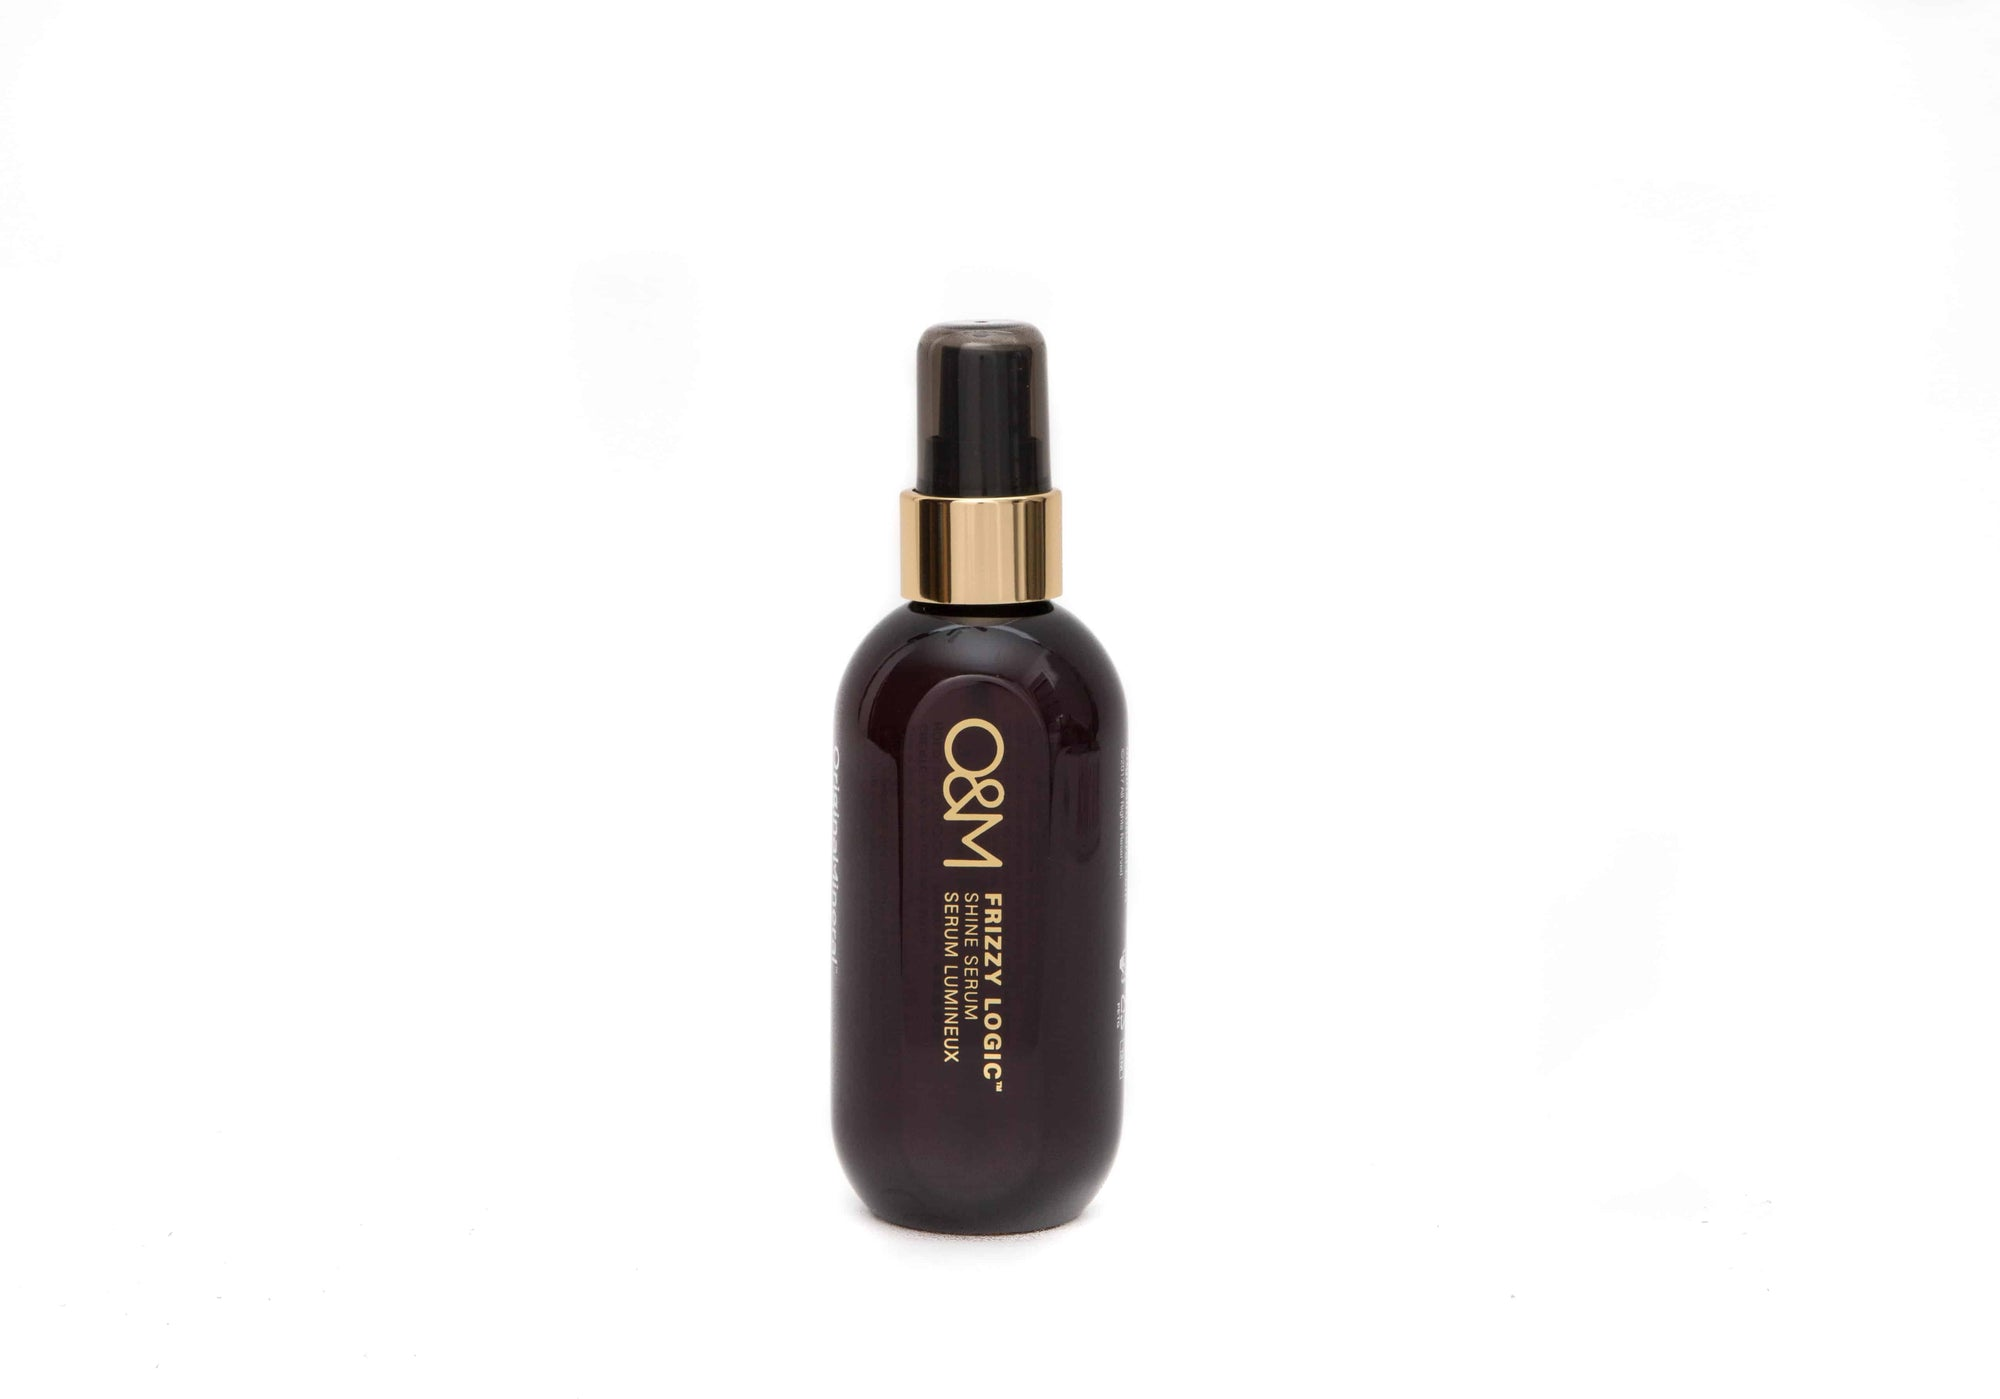 Frizzy Logic Shine Serum 100 ml | O&M